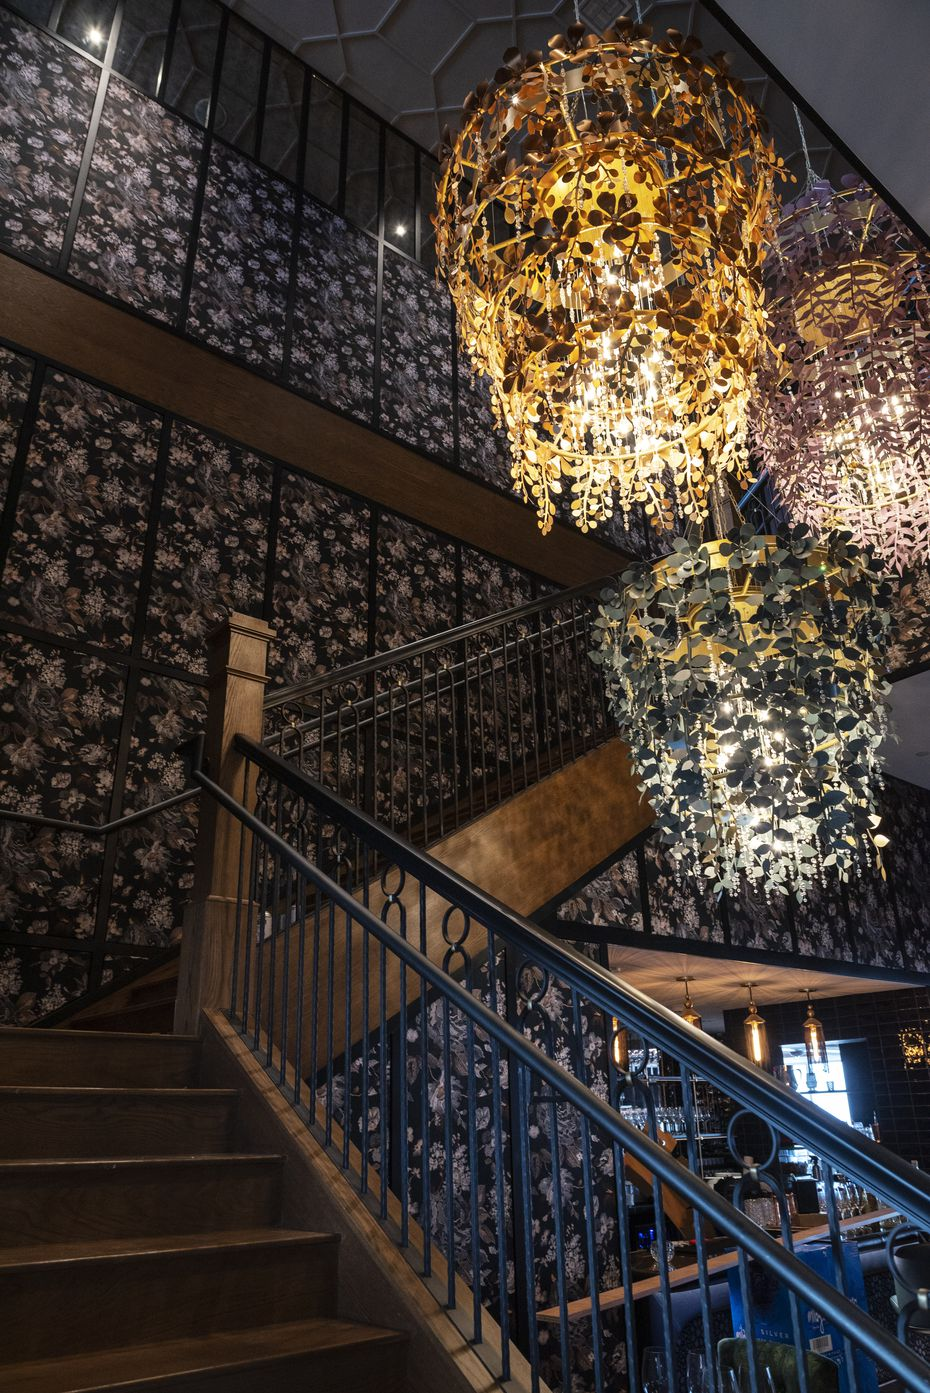 The staircase in the middle of Monarch leads to private rooms and event spaces. Underneath is the Chandelier Bar, a small area that is chef Danny Grant's favorite spot in the restaurant.